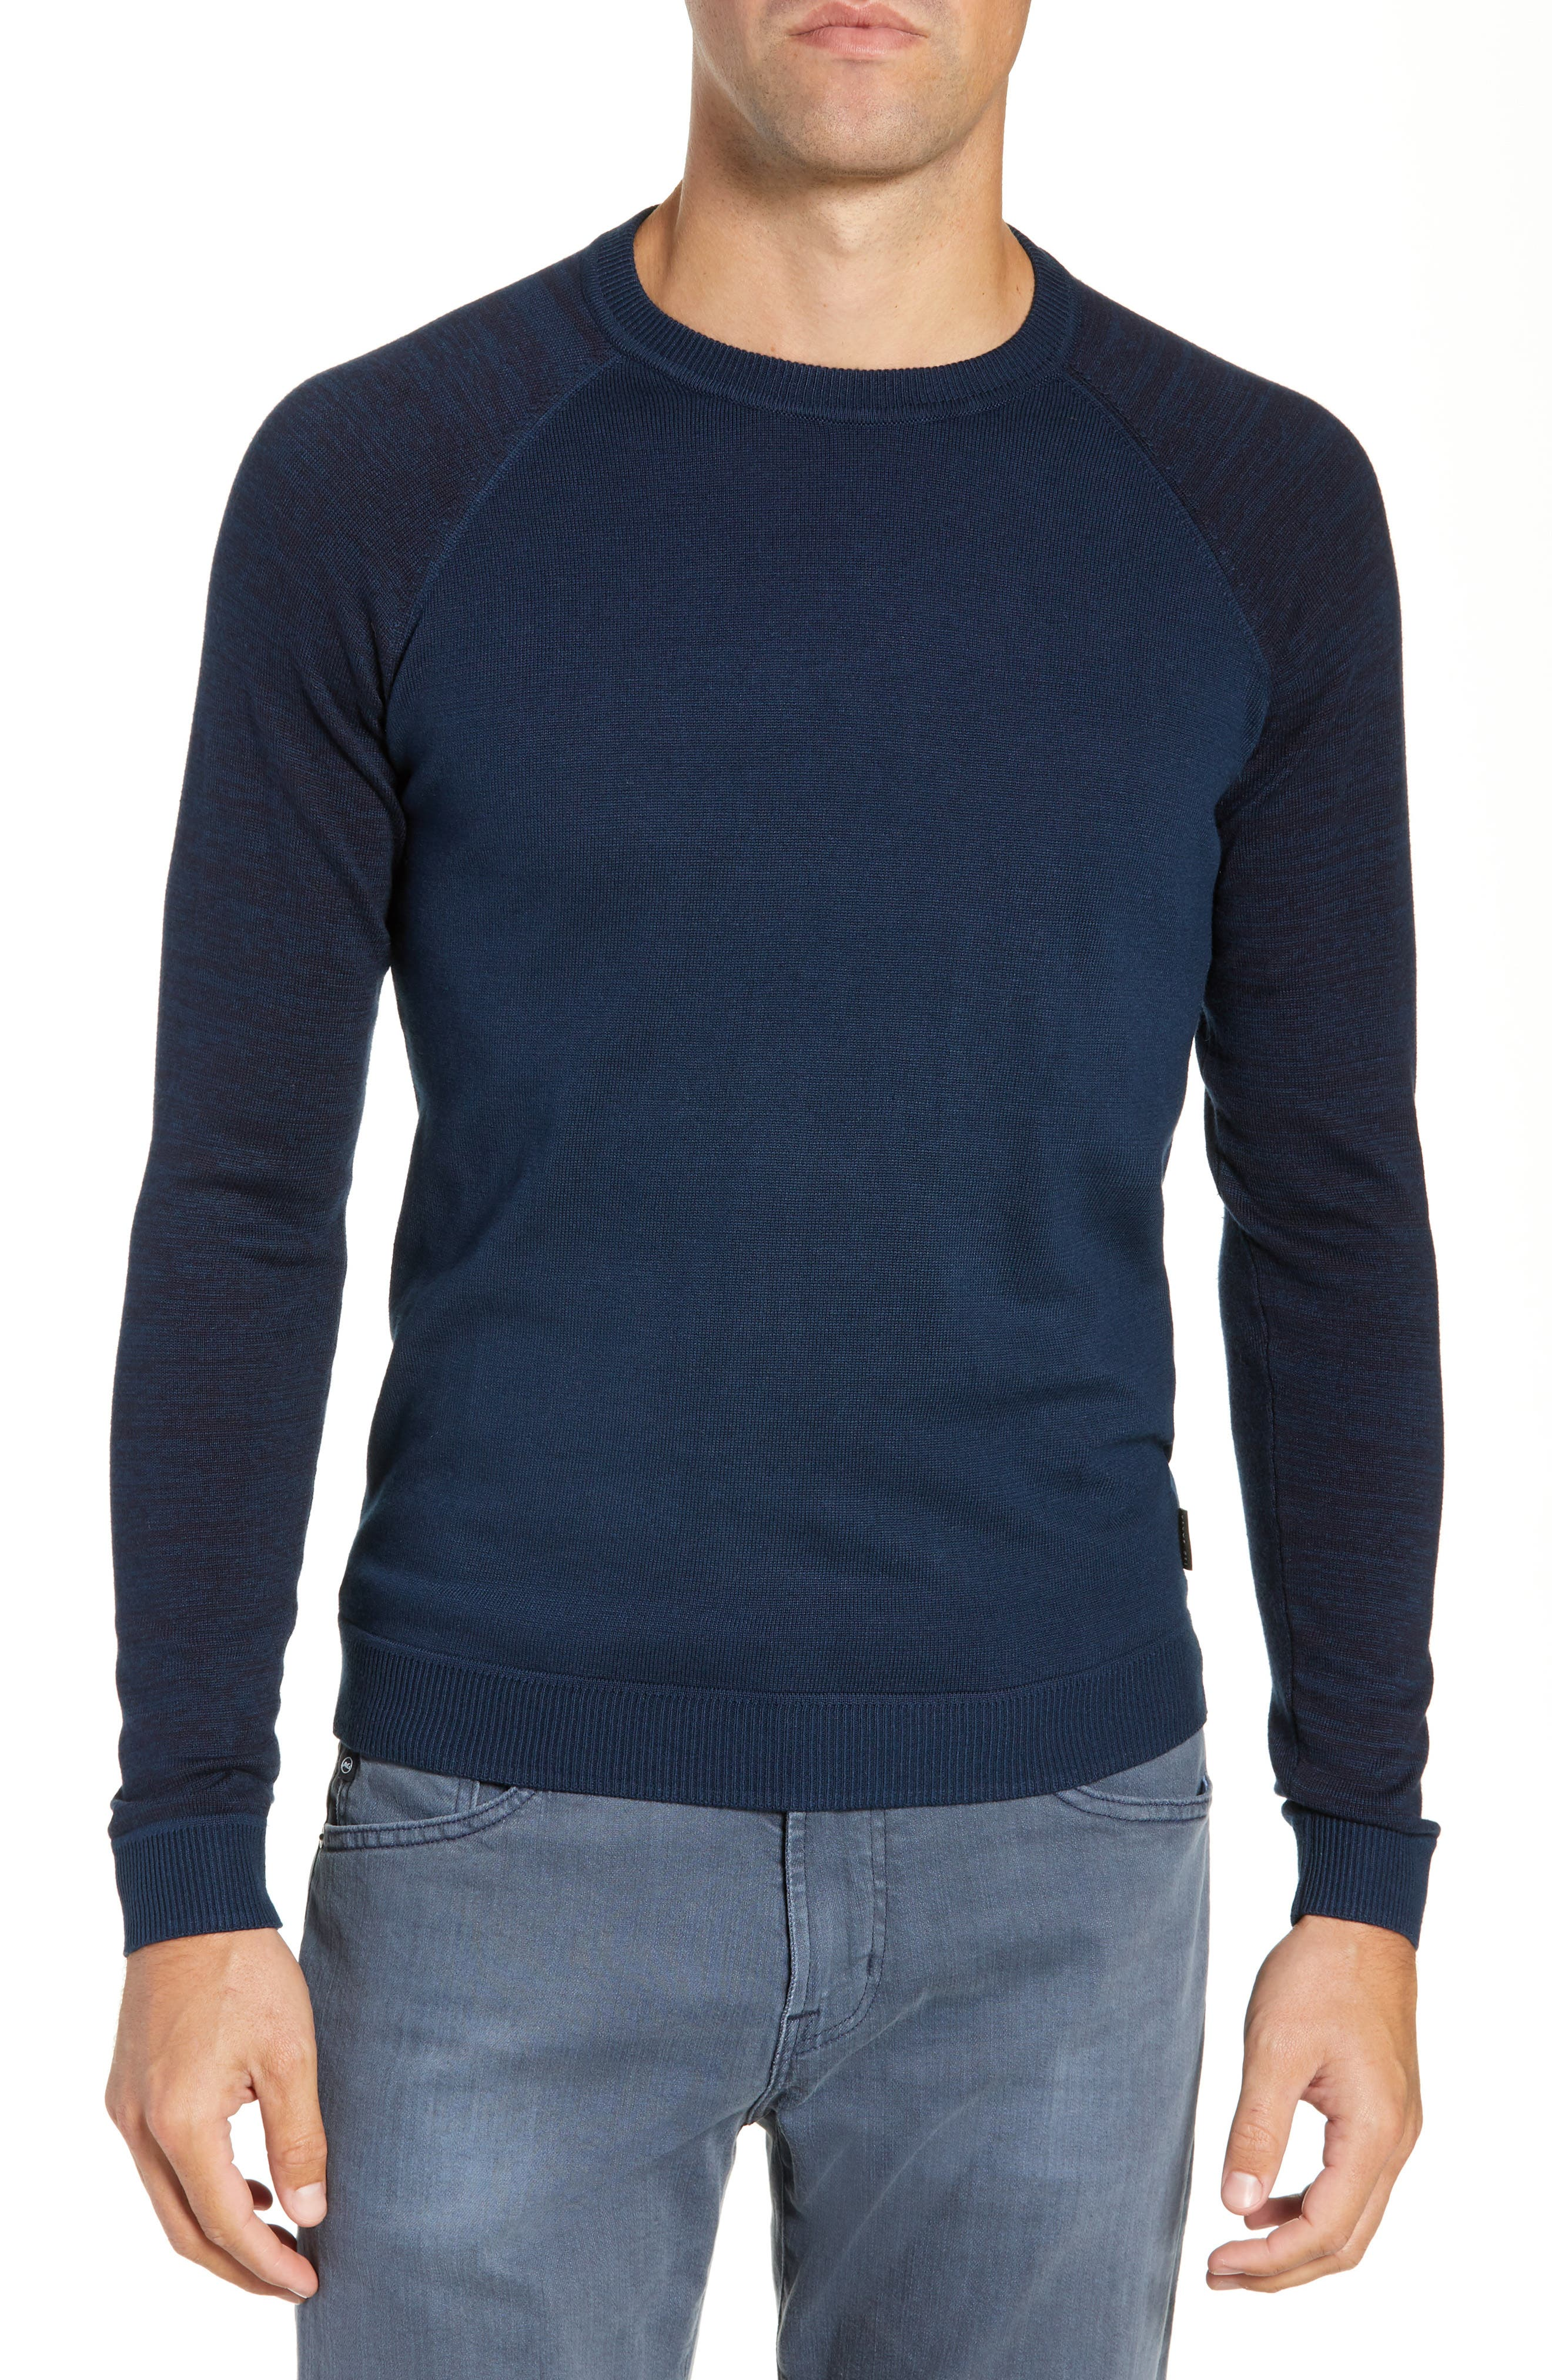 Cornfed Slim Fit Sweater,                             Main thumbnail 1, color,                             TEAL-BLUE